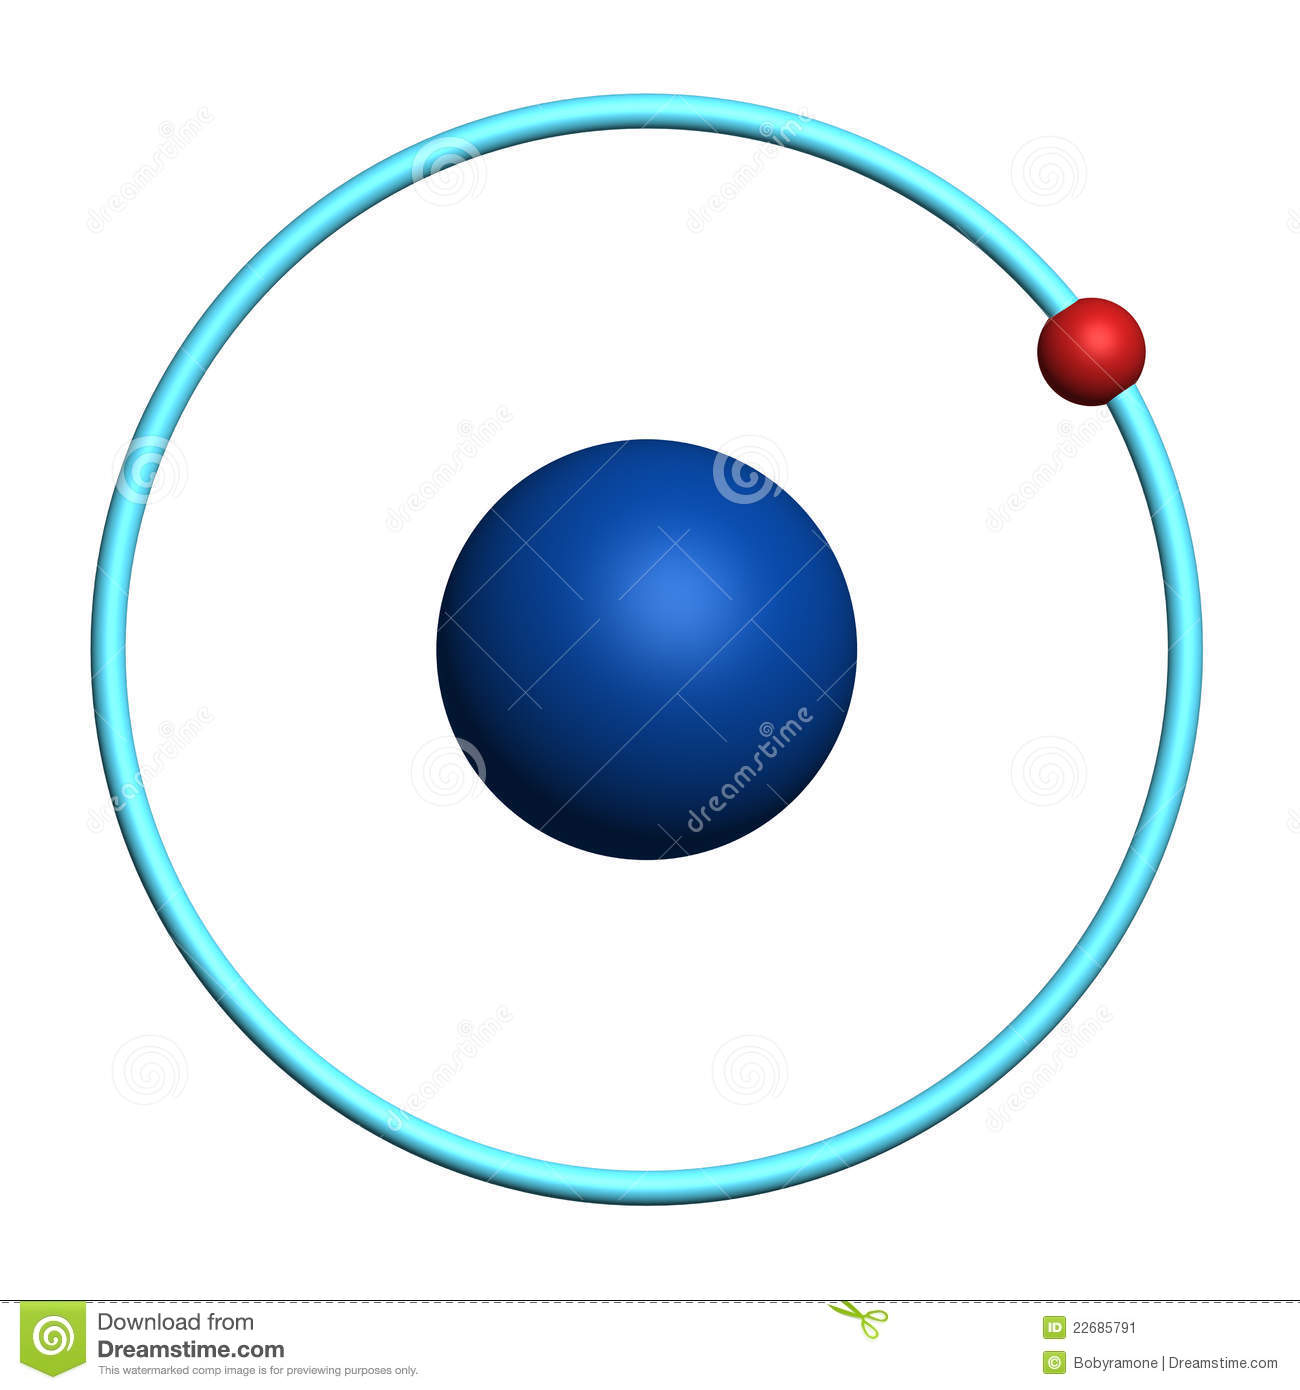 hydrogen atom on white background stock image image clipart drowning woman drowning clip art images